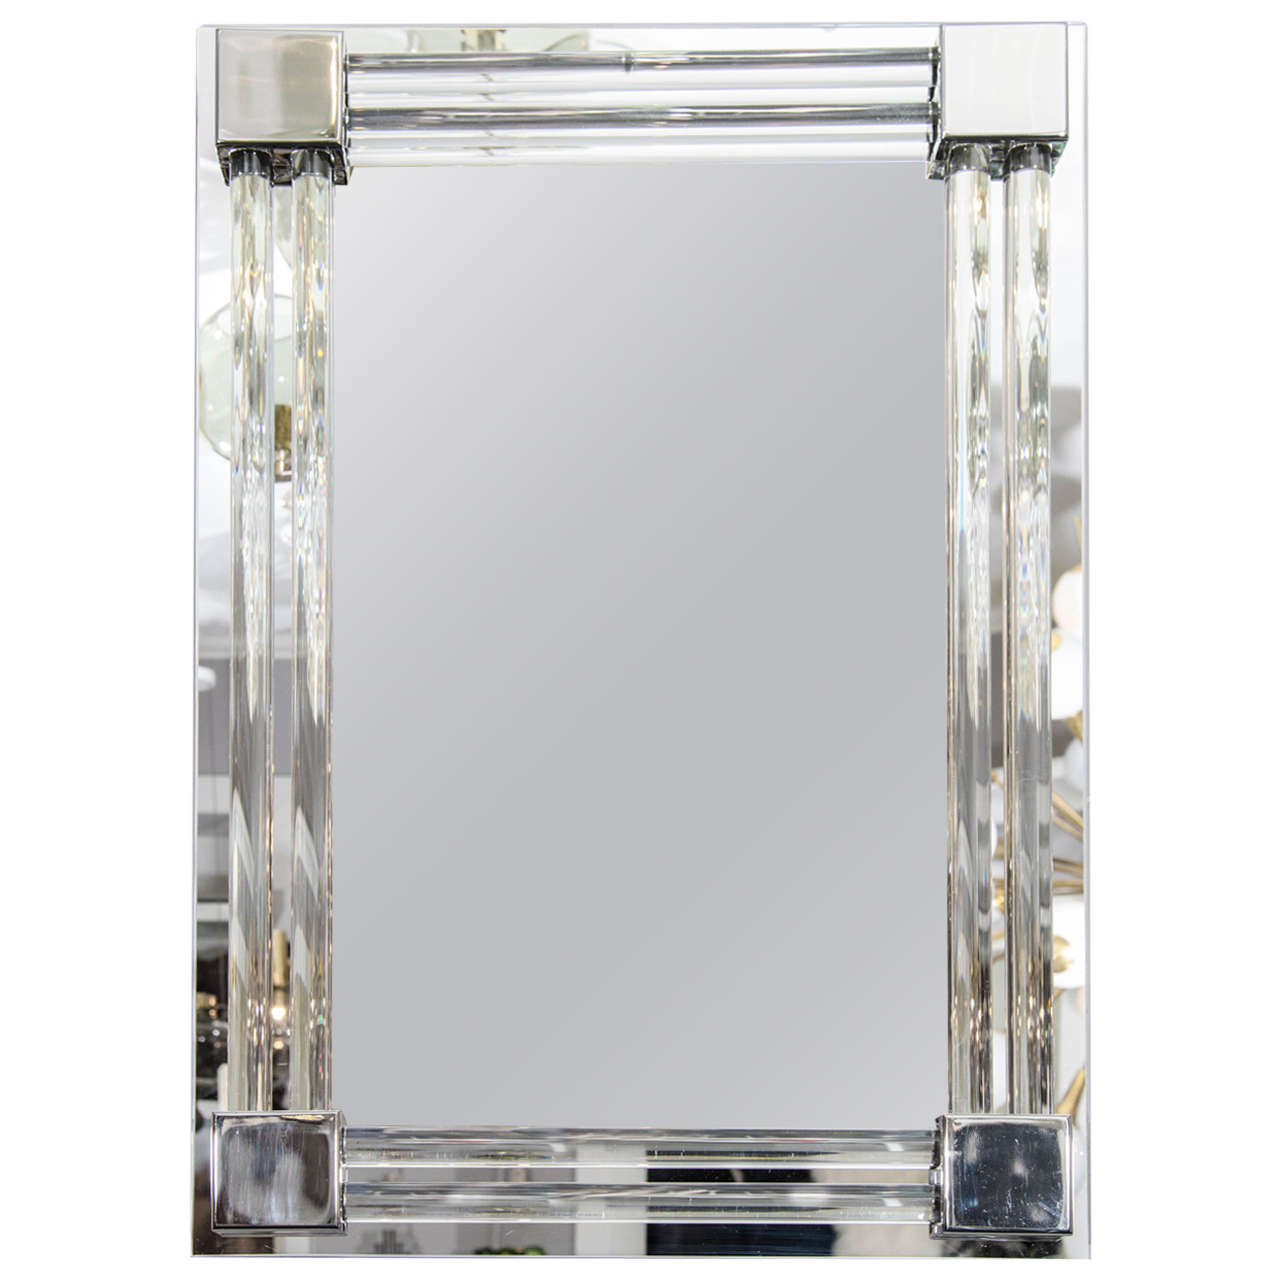 Custom glass and rod polished nickel tubular mirror for for Custom mirrors